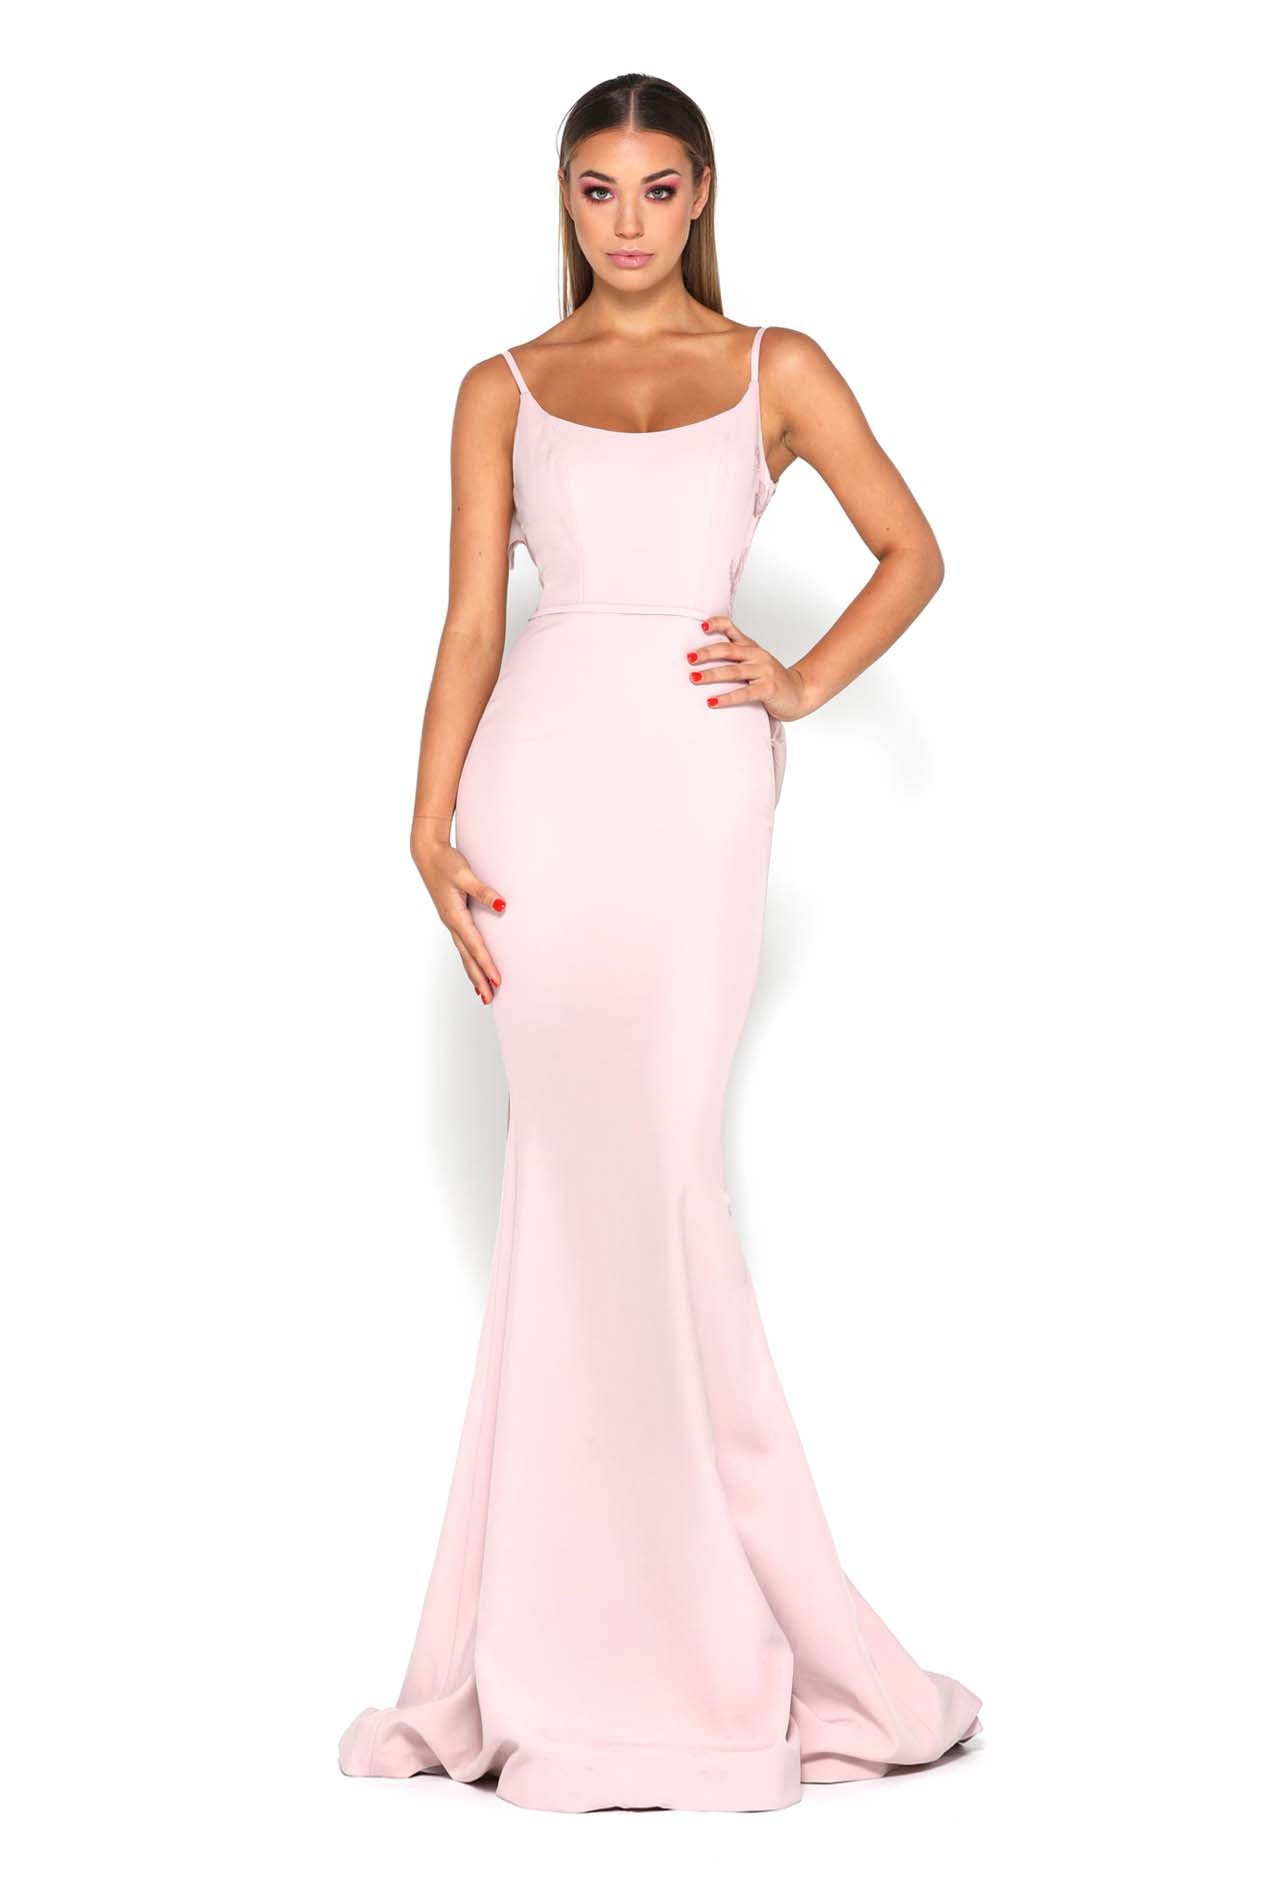 ELLIE GOWN MAUVE